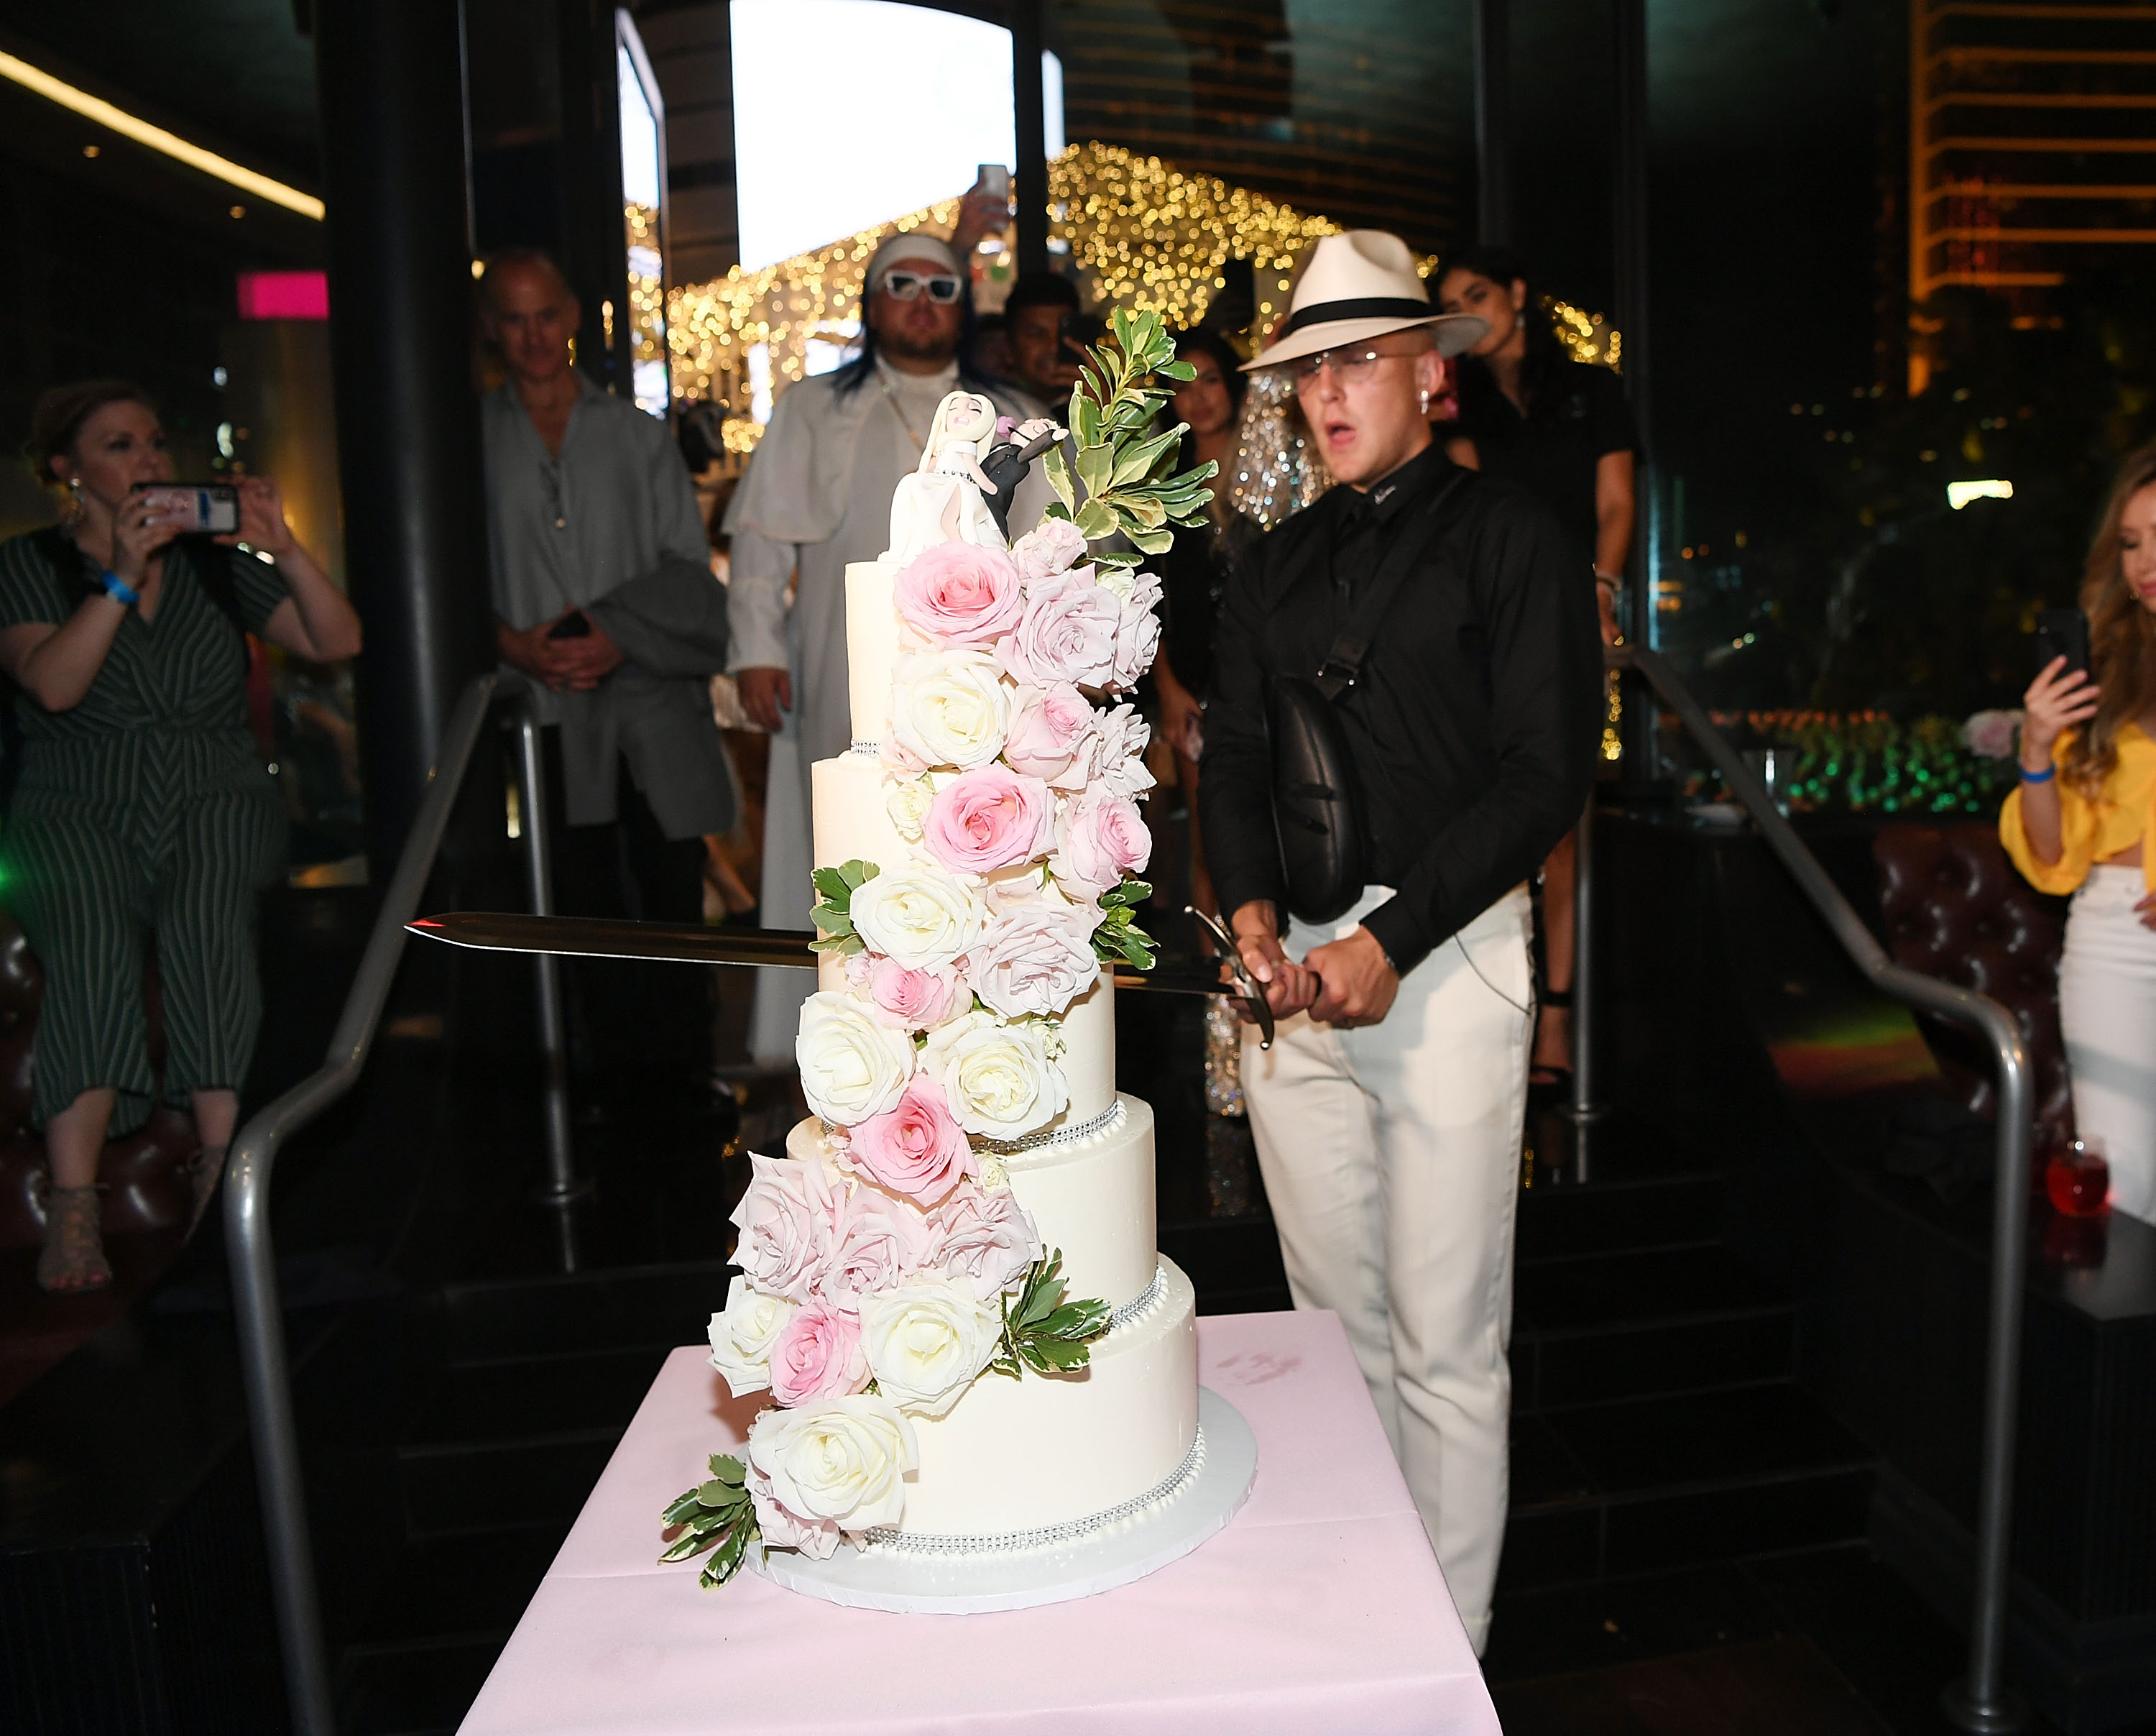 Jake Paul cuts the cake at his wedding reception at Sweet Beginnings in Sugar Factory on July 28, 2019 in Las Vegas, Nevada. (Photo by Denise Truscello/Getty Images for Sugar Factory)